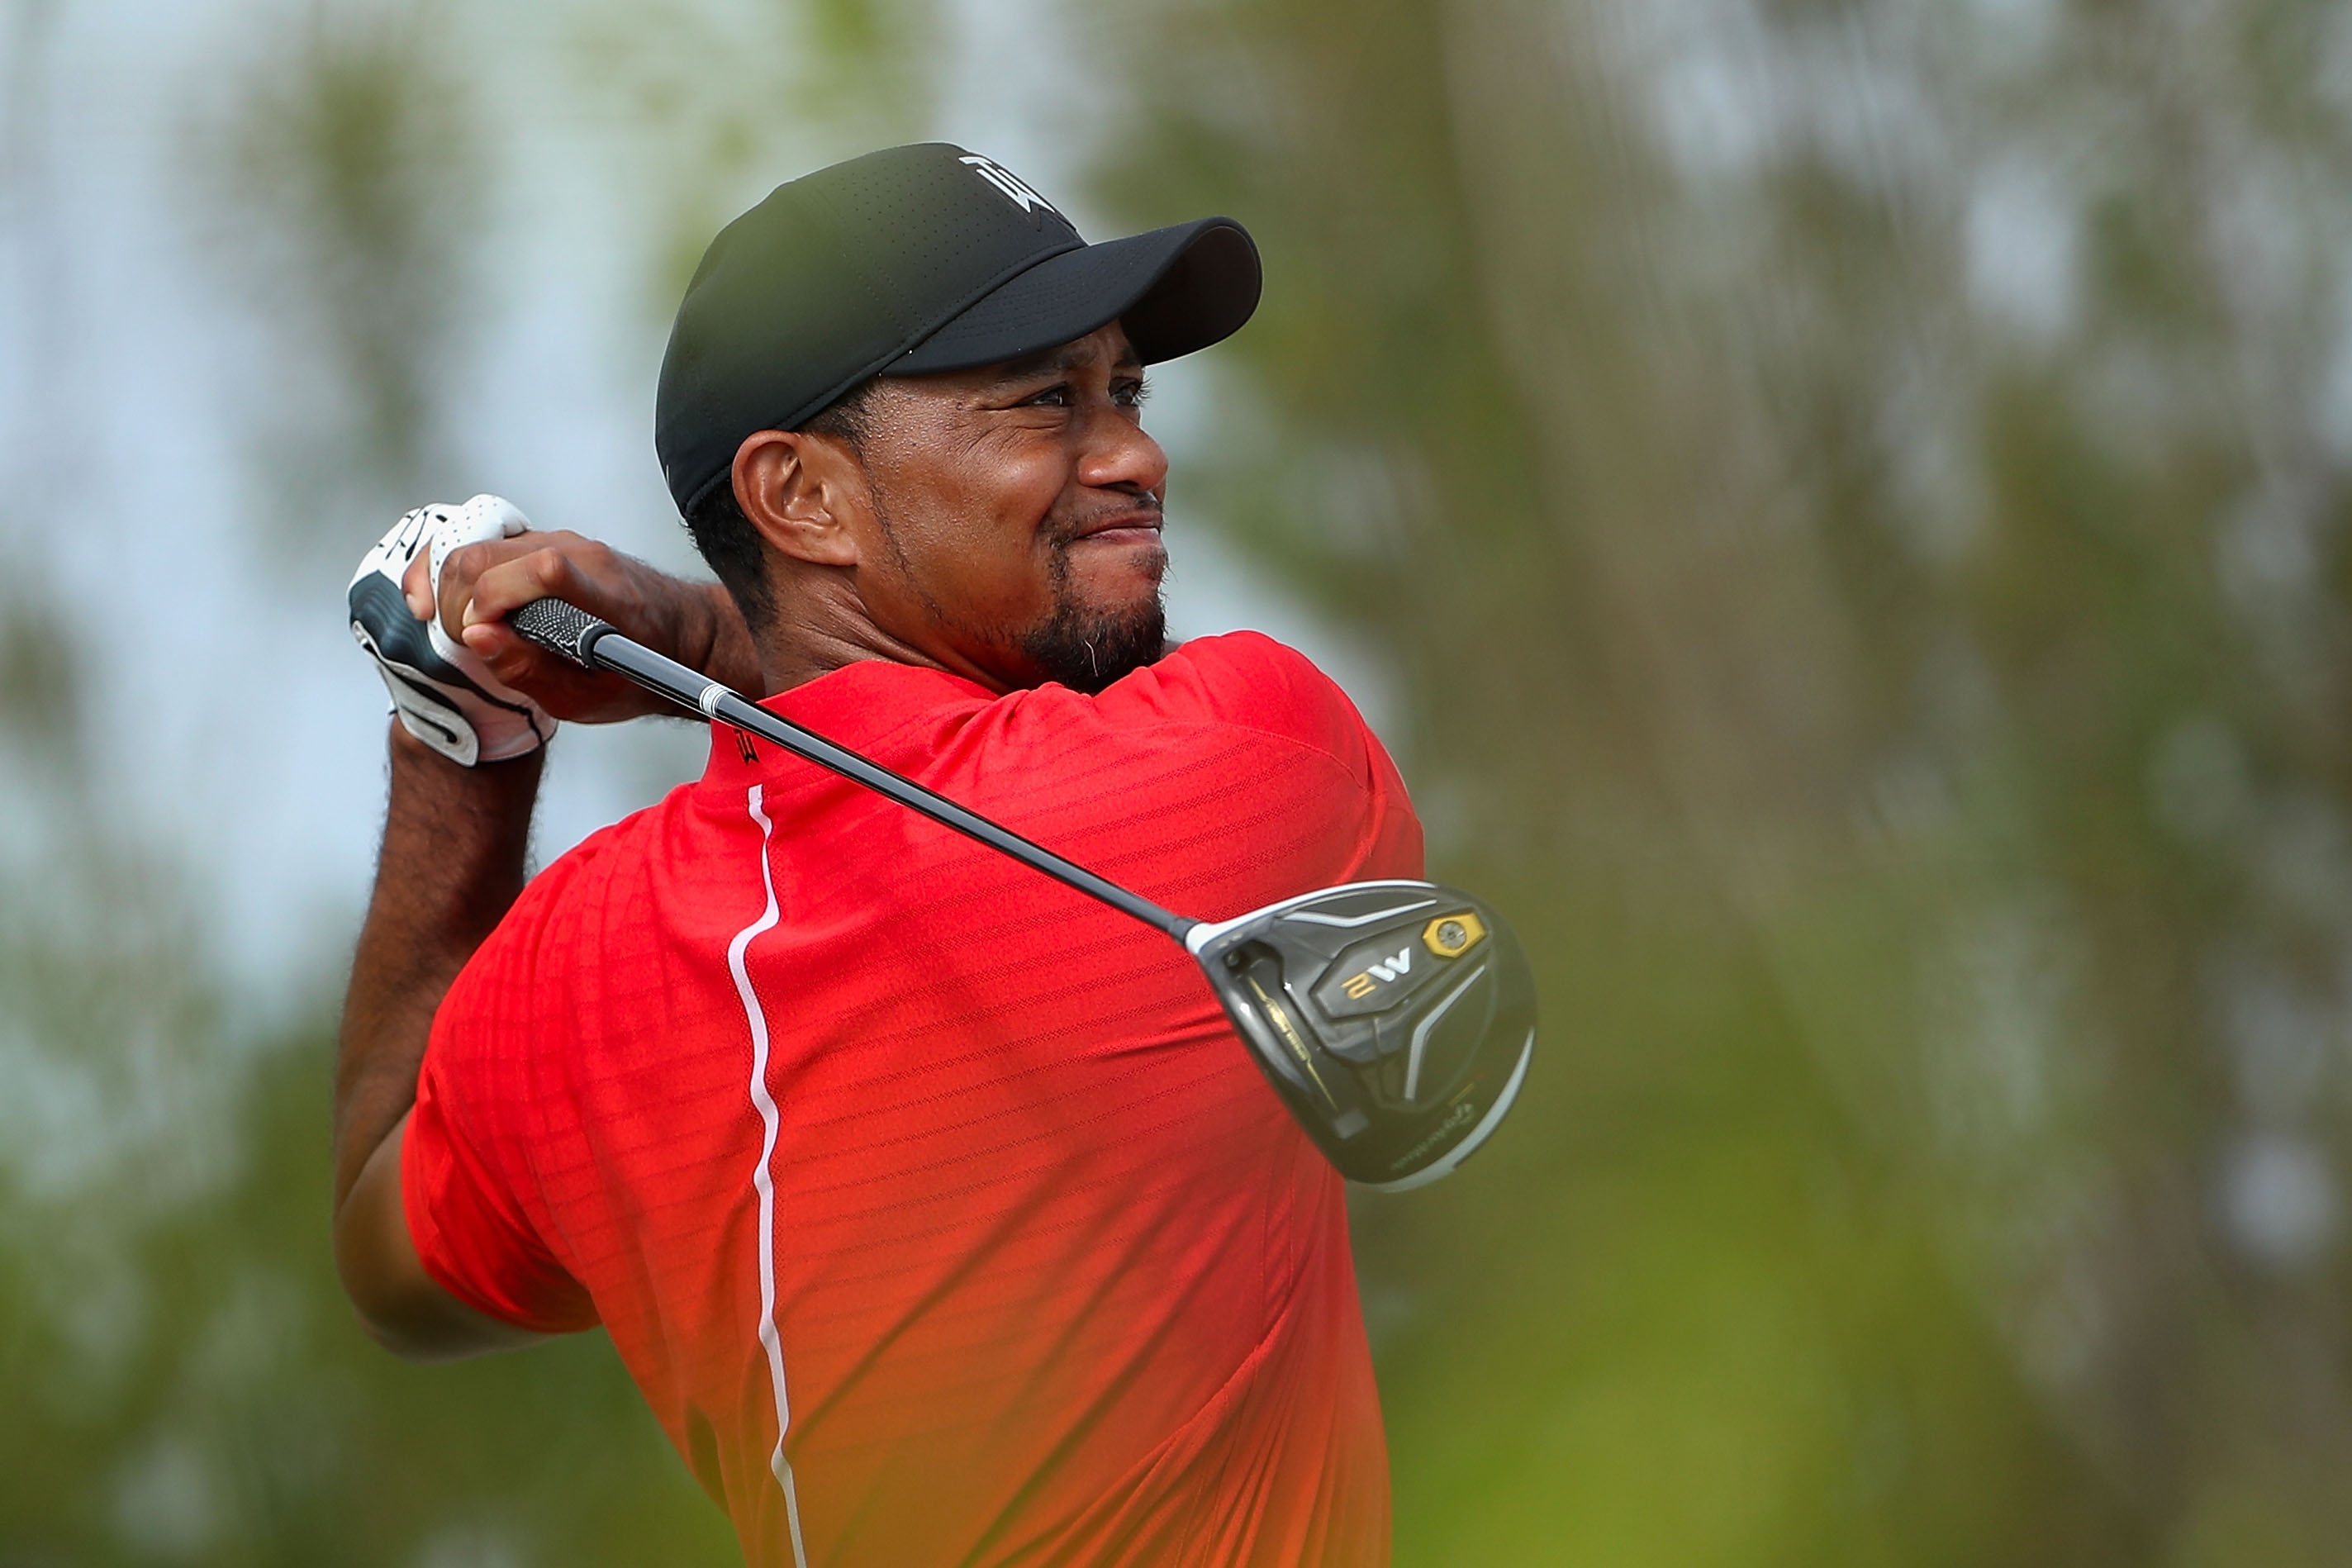 Tiger Woods announces plans to return to golf after long-term injury